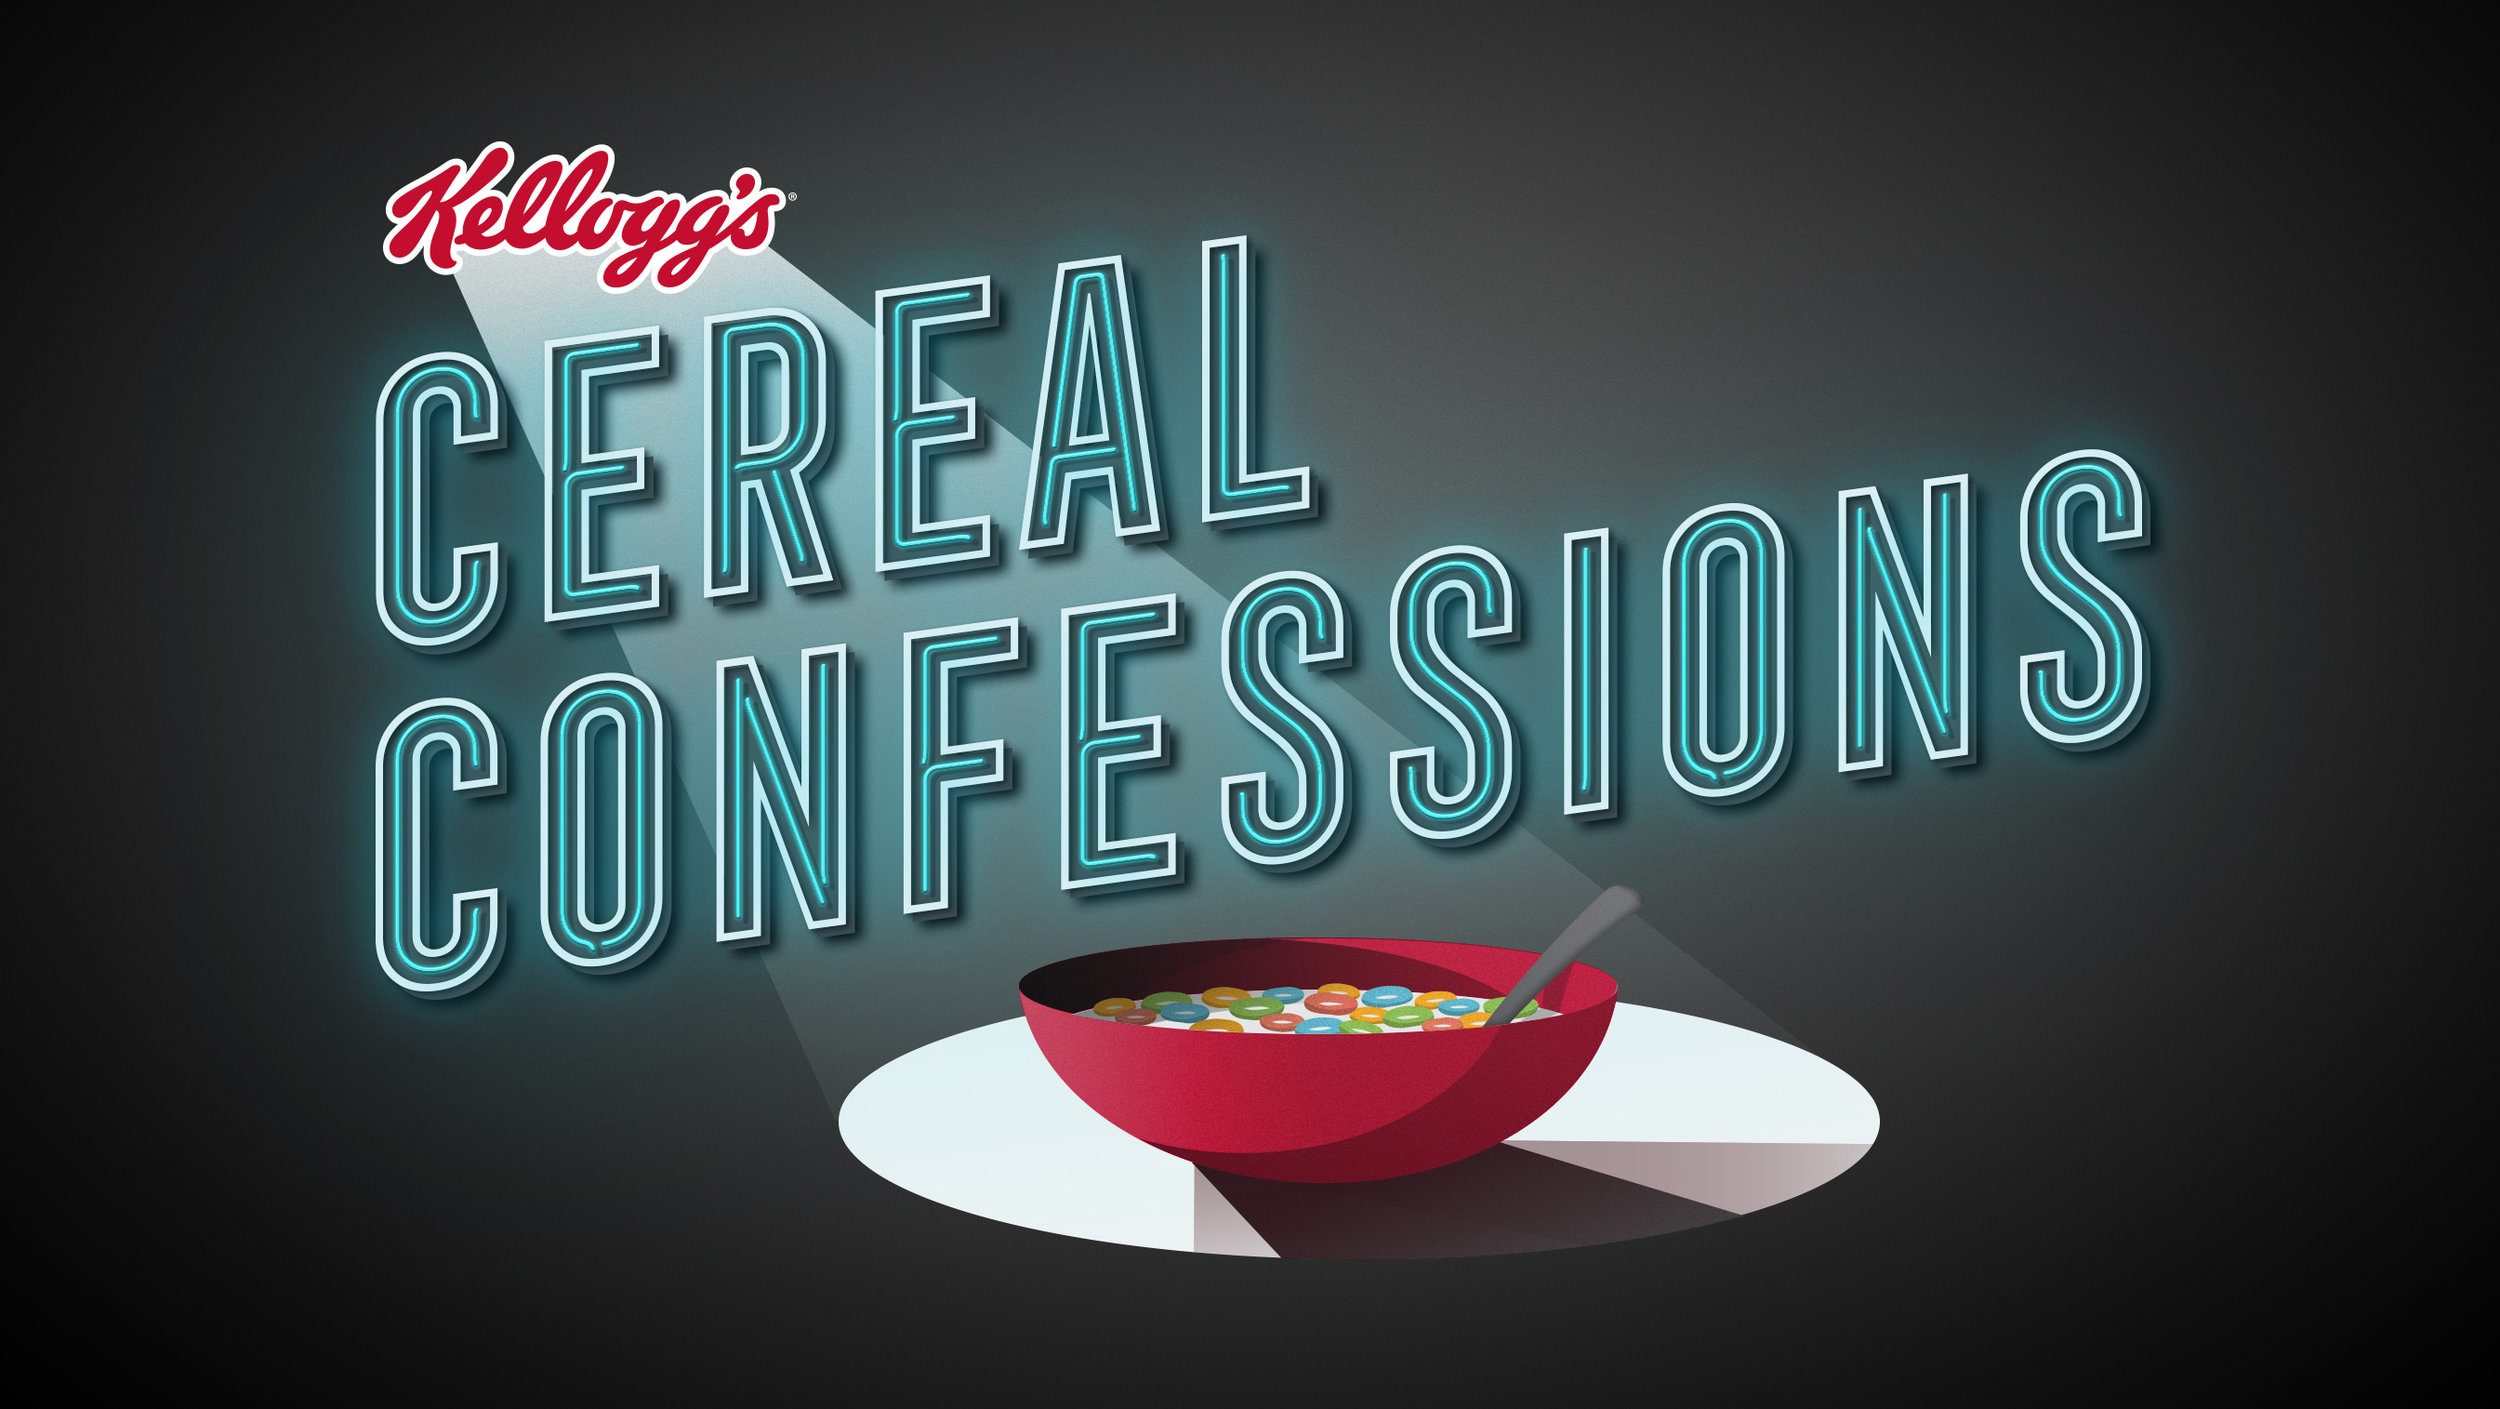 Cereal_Confessions_logo5.jpg